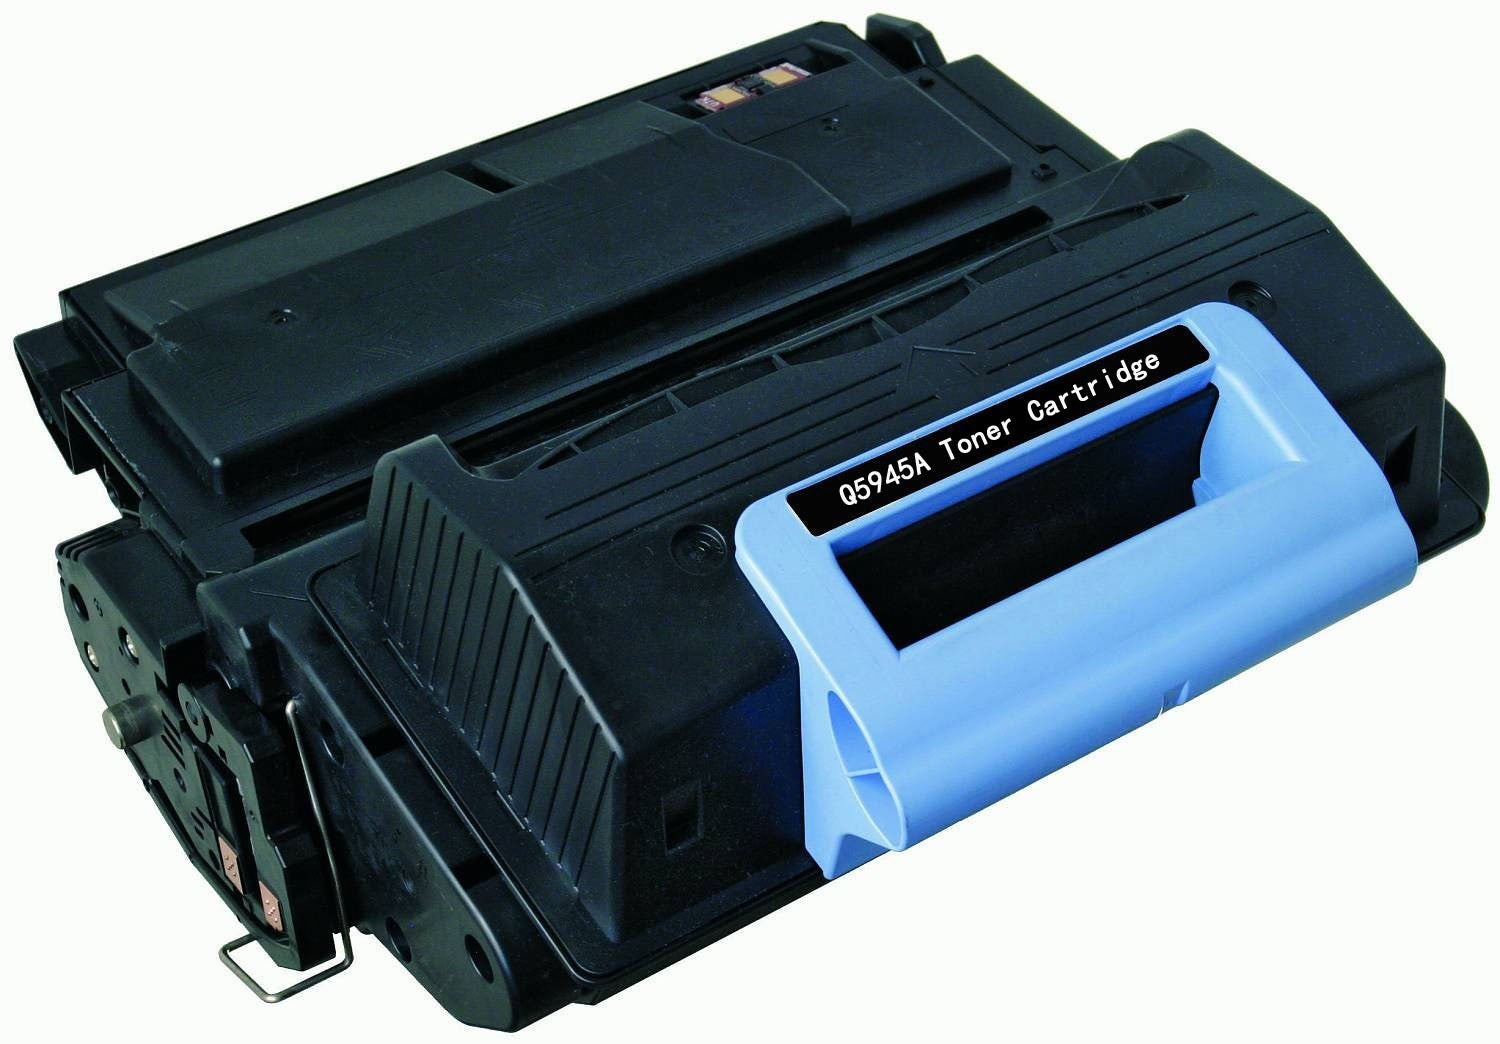 SuperInk 10 Pack Compatible Toner Cartridge Replacement for Q5945A 45A Black use in Laserjet 4345 4345mfp,MFP 4345x 4345m 4345xs M4345 M4345x M4345xm M4345xs Printer 18000 Pages High Yield